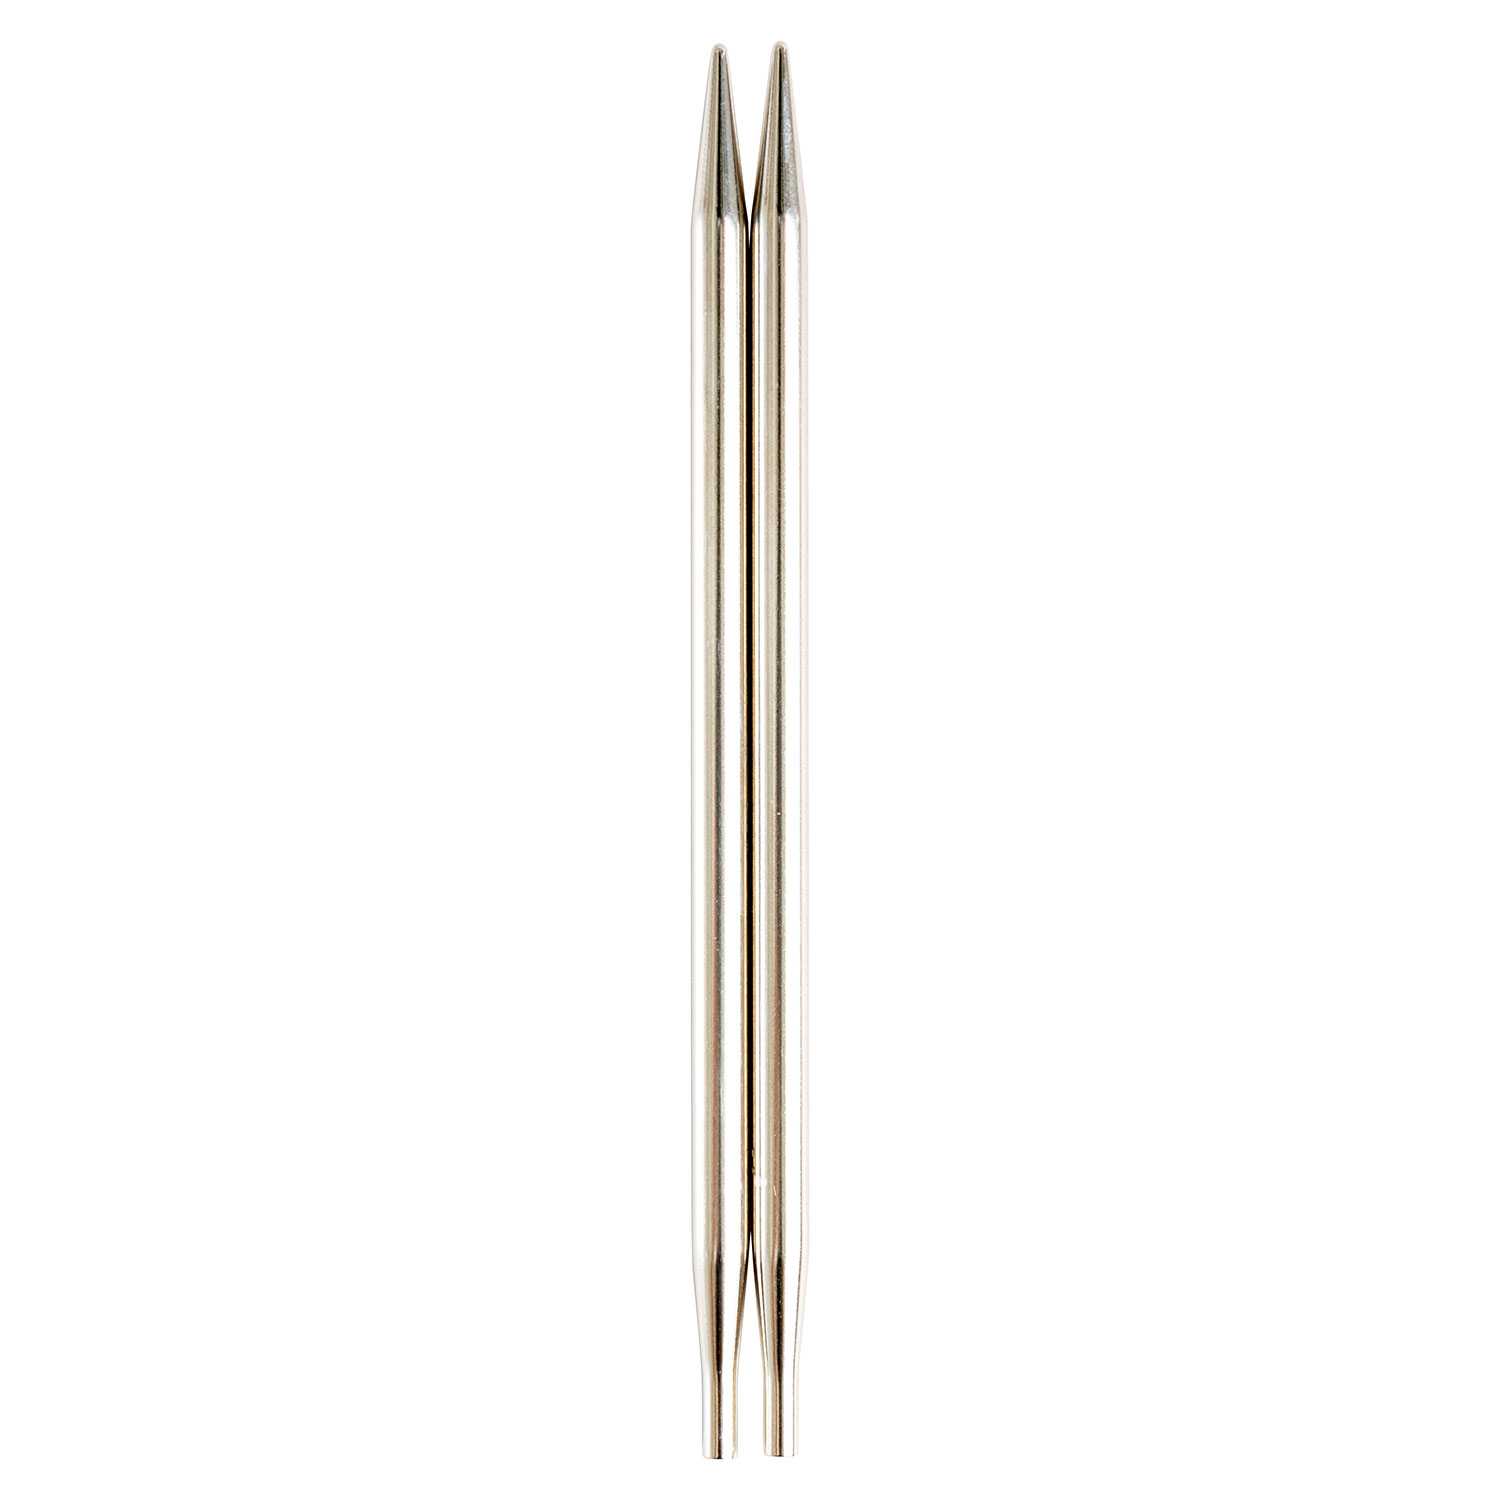 Options Interchangeable Nickel Plated Circular Knitting Needle Tips